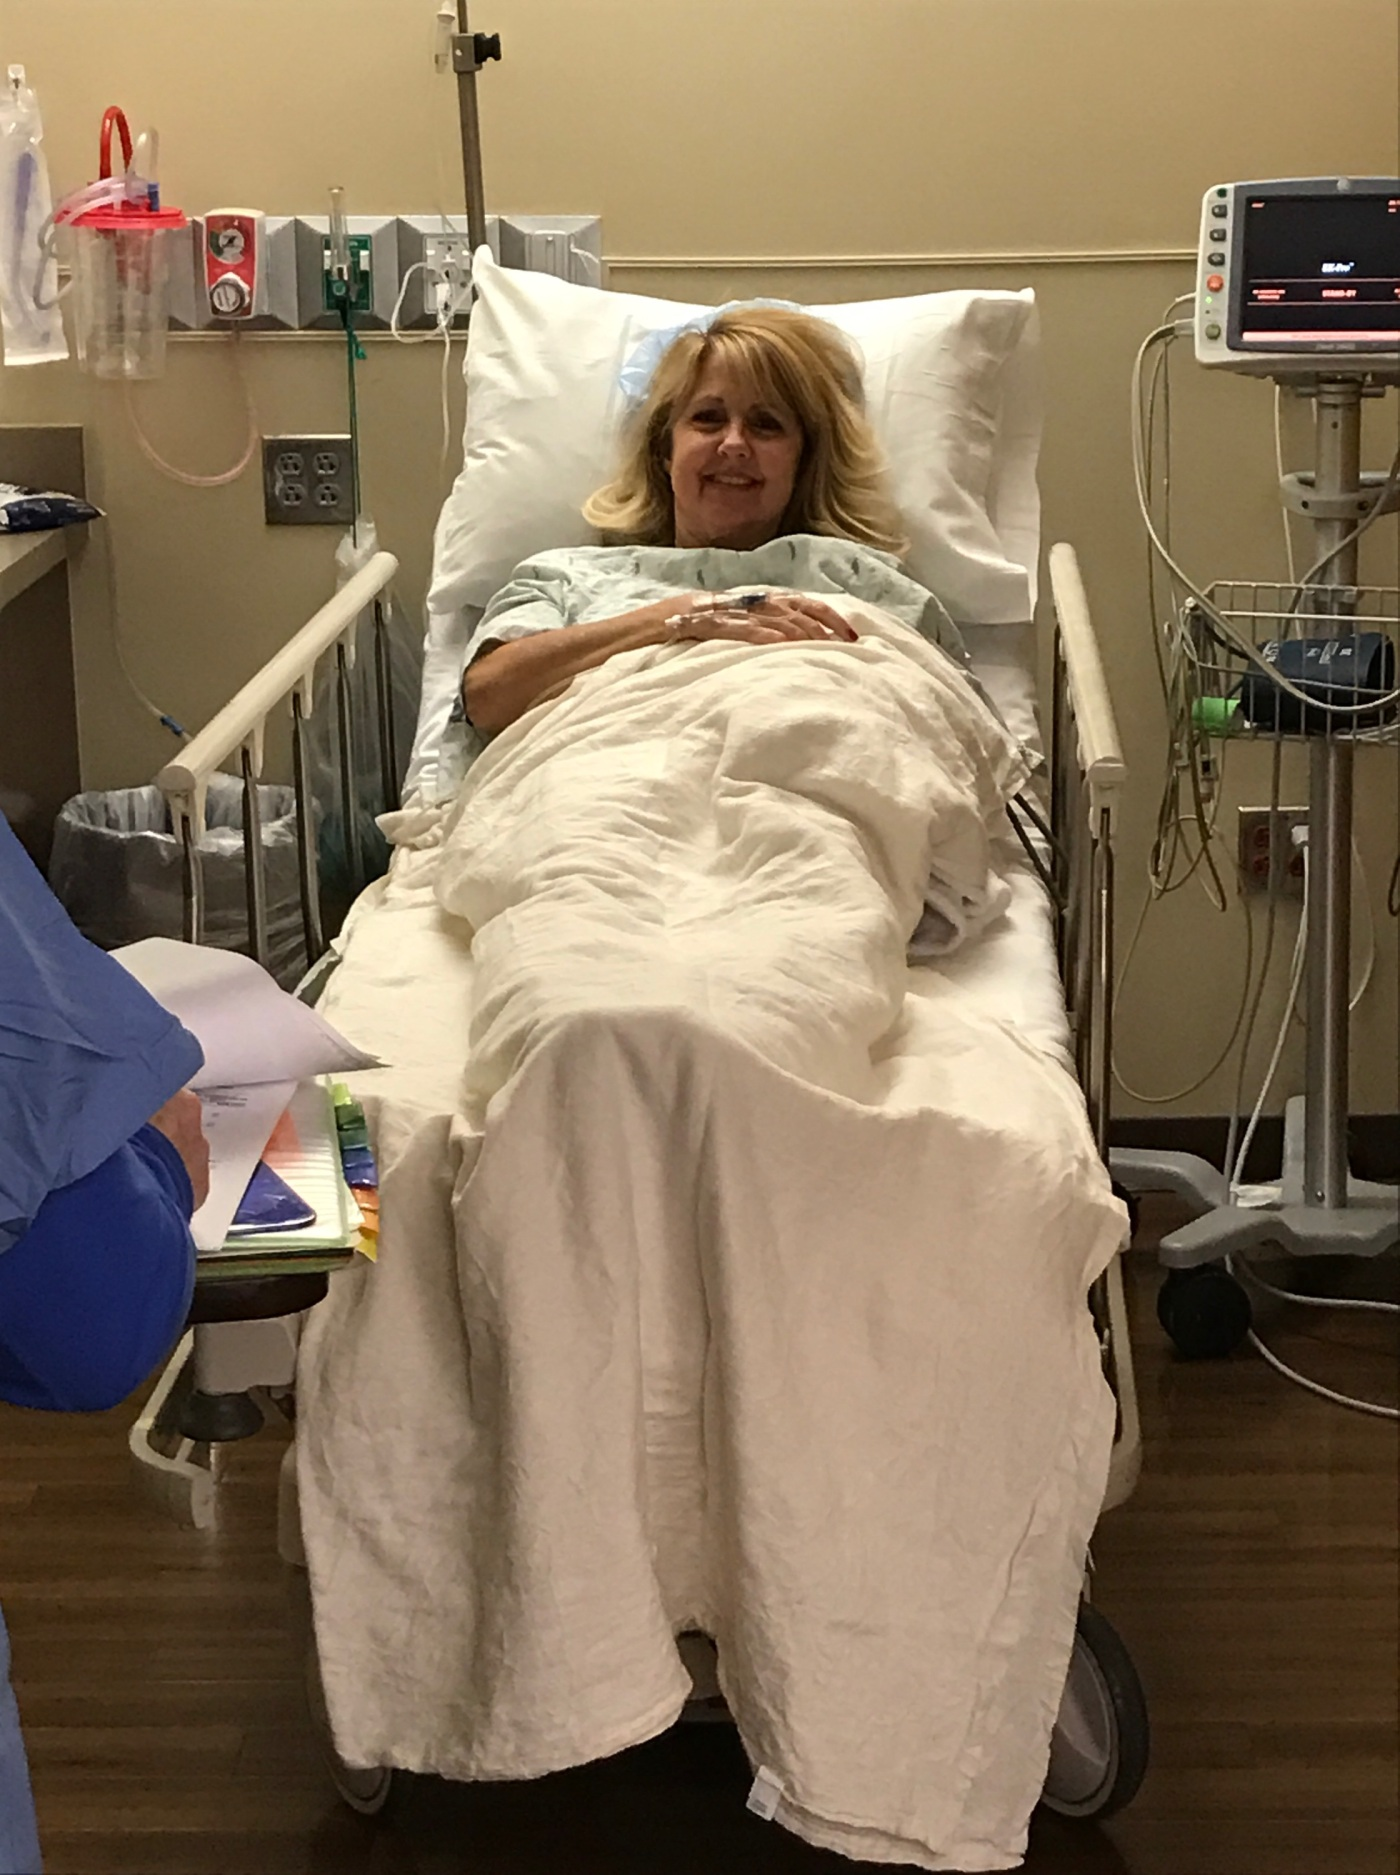 Gina Schreck Hip replacement surgery